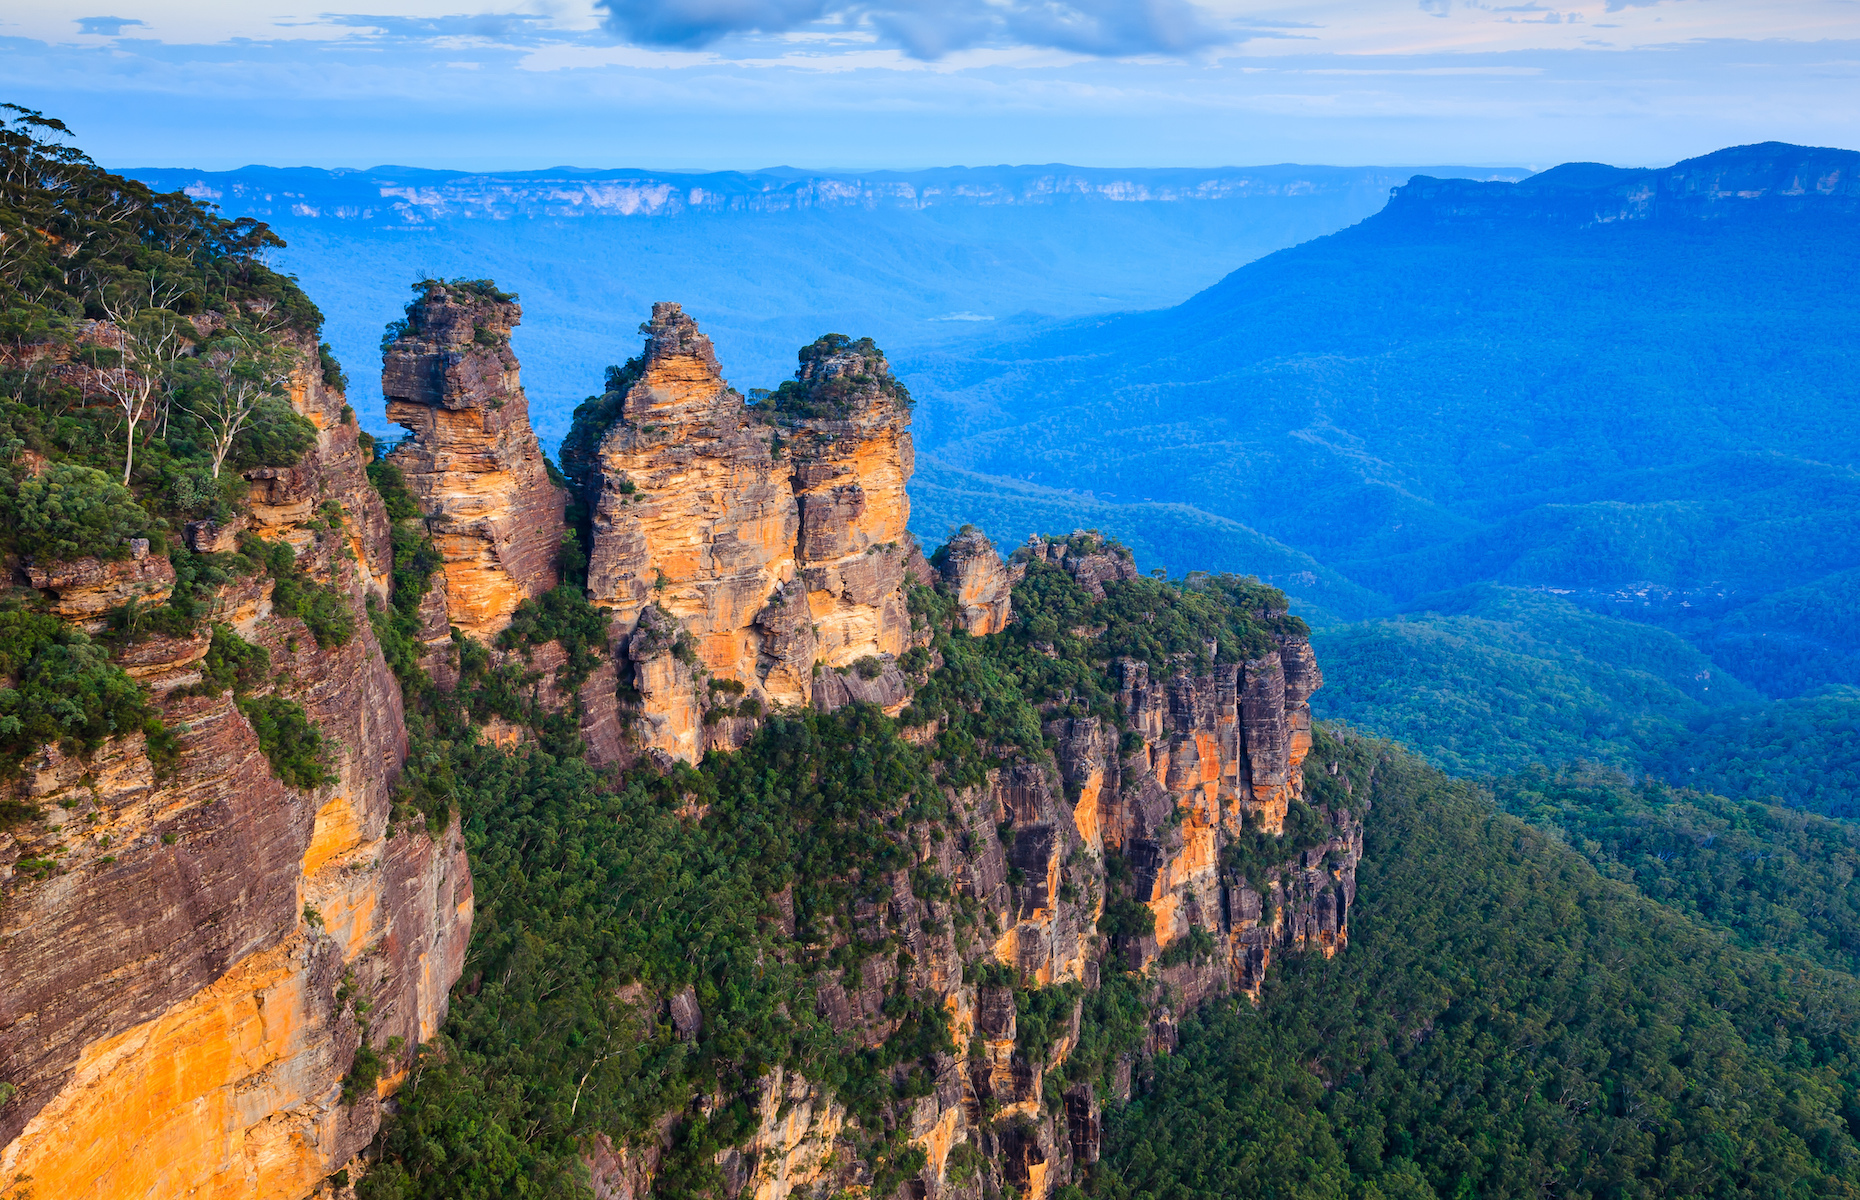 Slide 8 of 21: Taken from Echo Point lookout, the Three Sisters are the Blue Mountains' most iconic landmark. Named for an Indigenous myth of sisters from the Katoomba tribe turned to stone, the rock formations stand almost 1,000 metres (3,000 feet) above sea level.